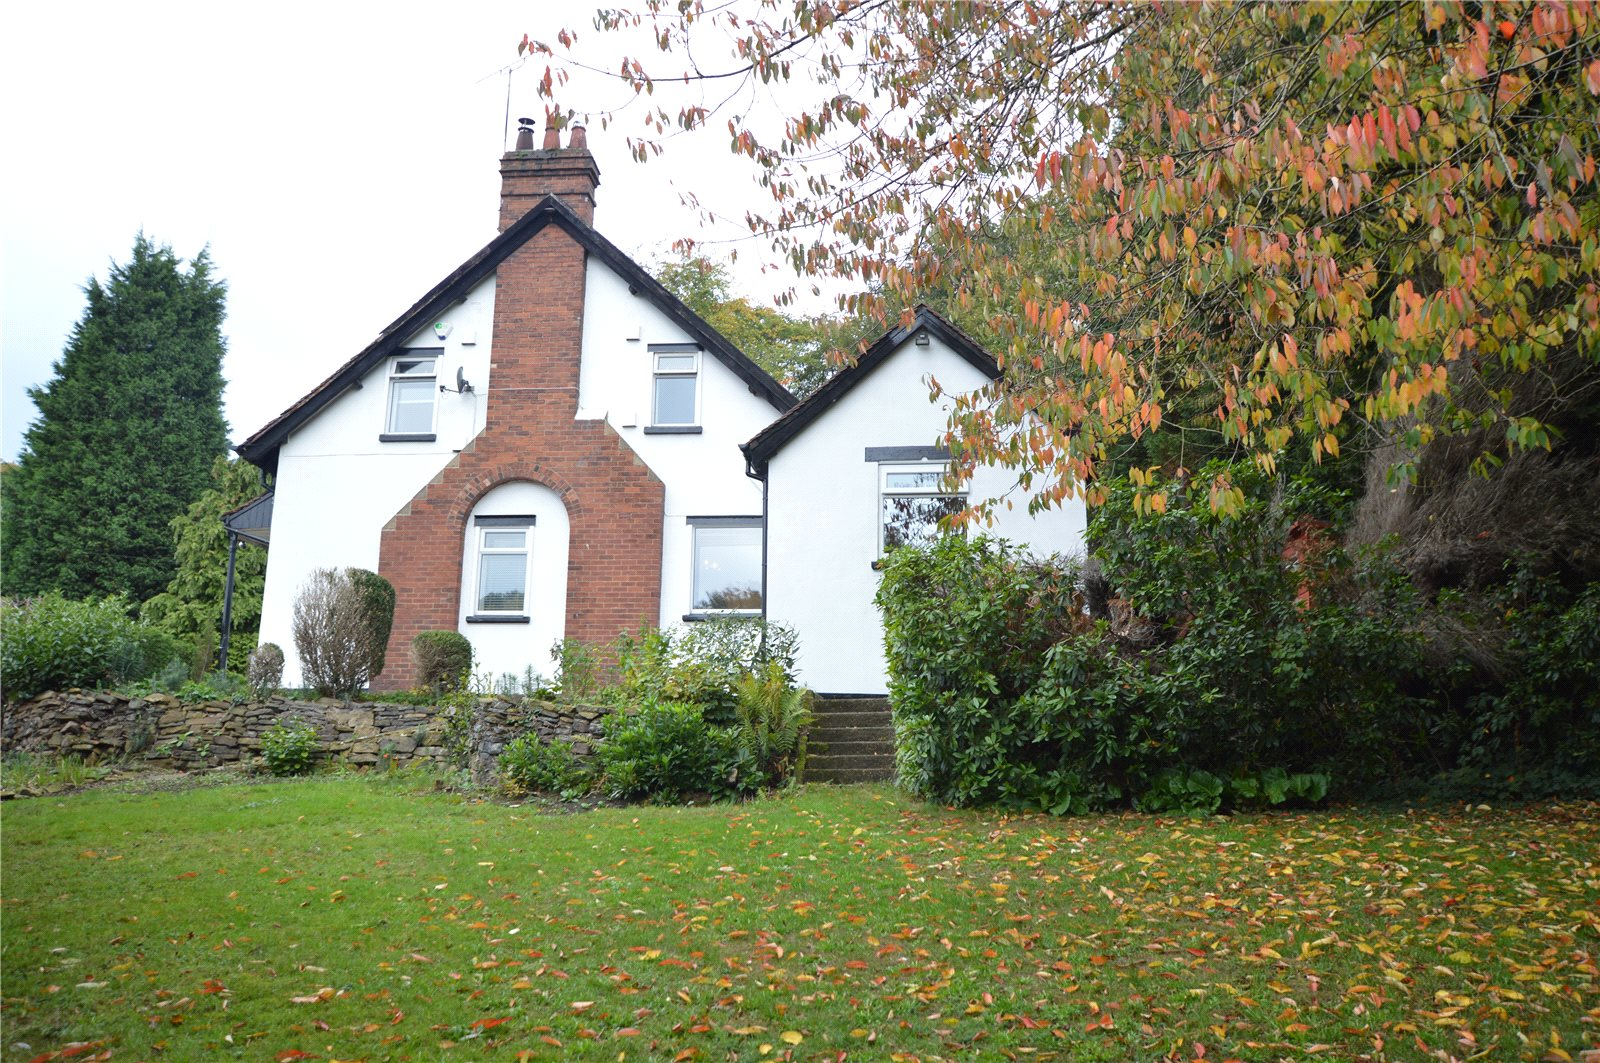 property for sale in Morley, Exterior spacious five bedroom home